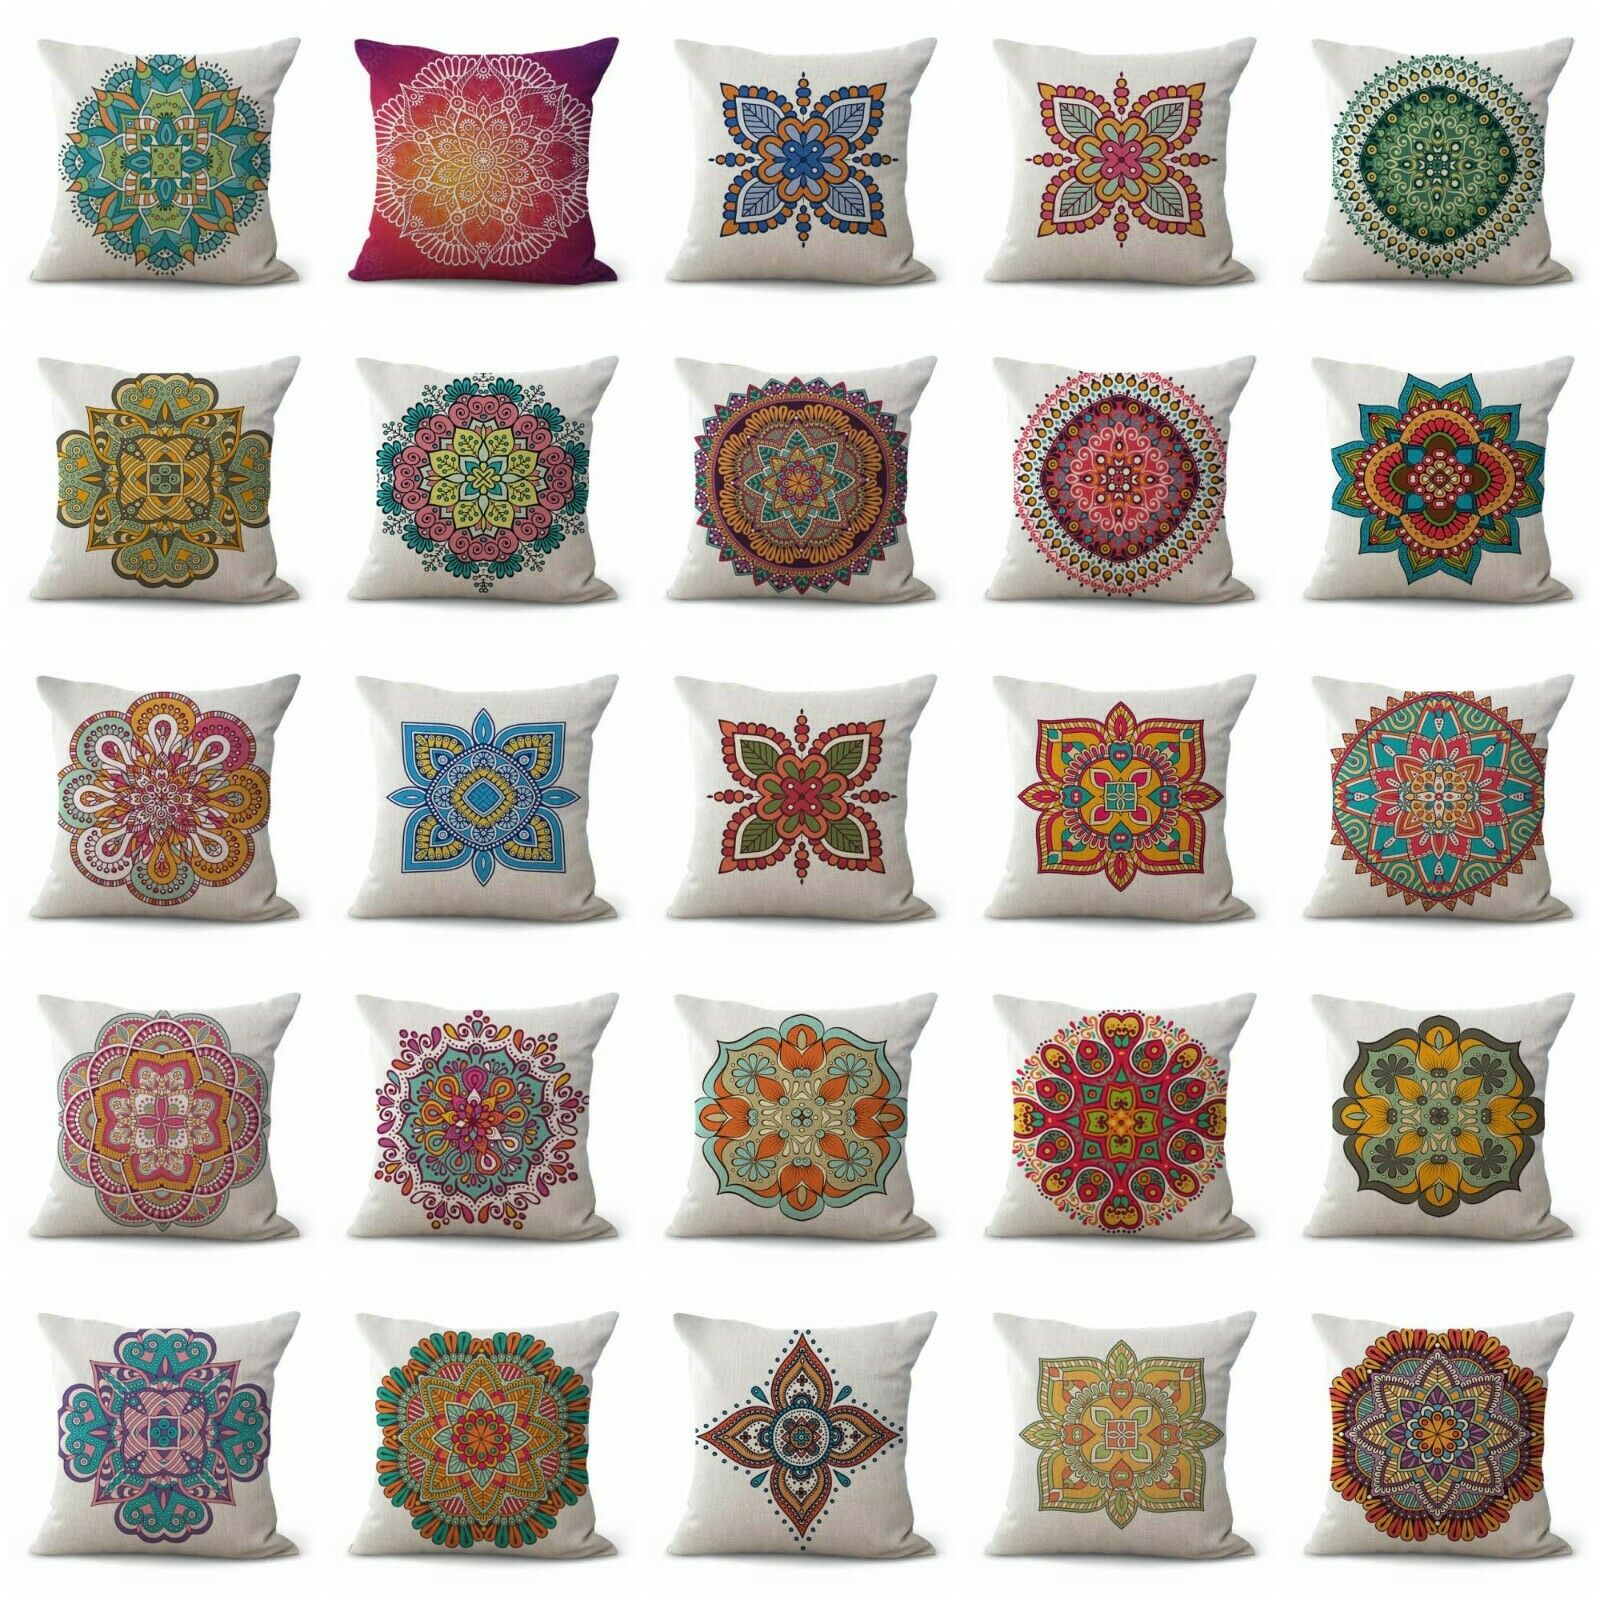 US SELLER- set of 20 pillow couch perfection eternity mandala cushion covers